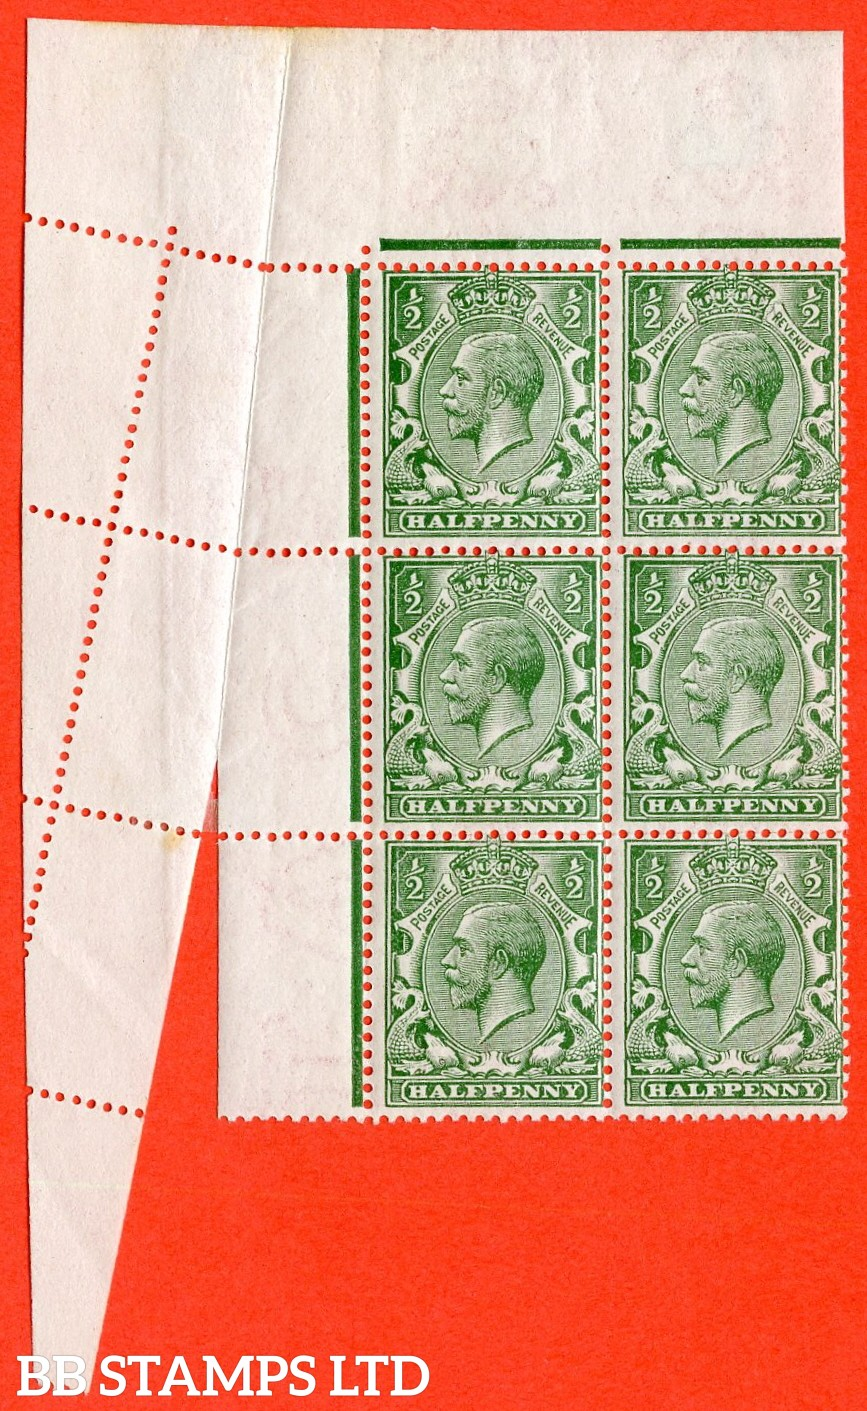 "SG. 351 N14 (1). ½d green. A superb mint top left corner block of six with a very fine and visual  "" PAPER FOLD ERROR "". Watermark type III."